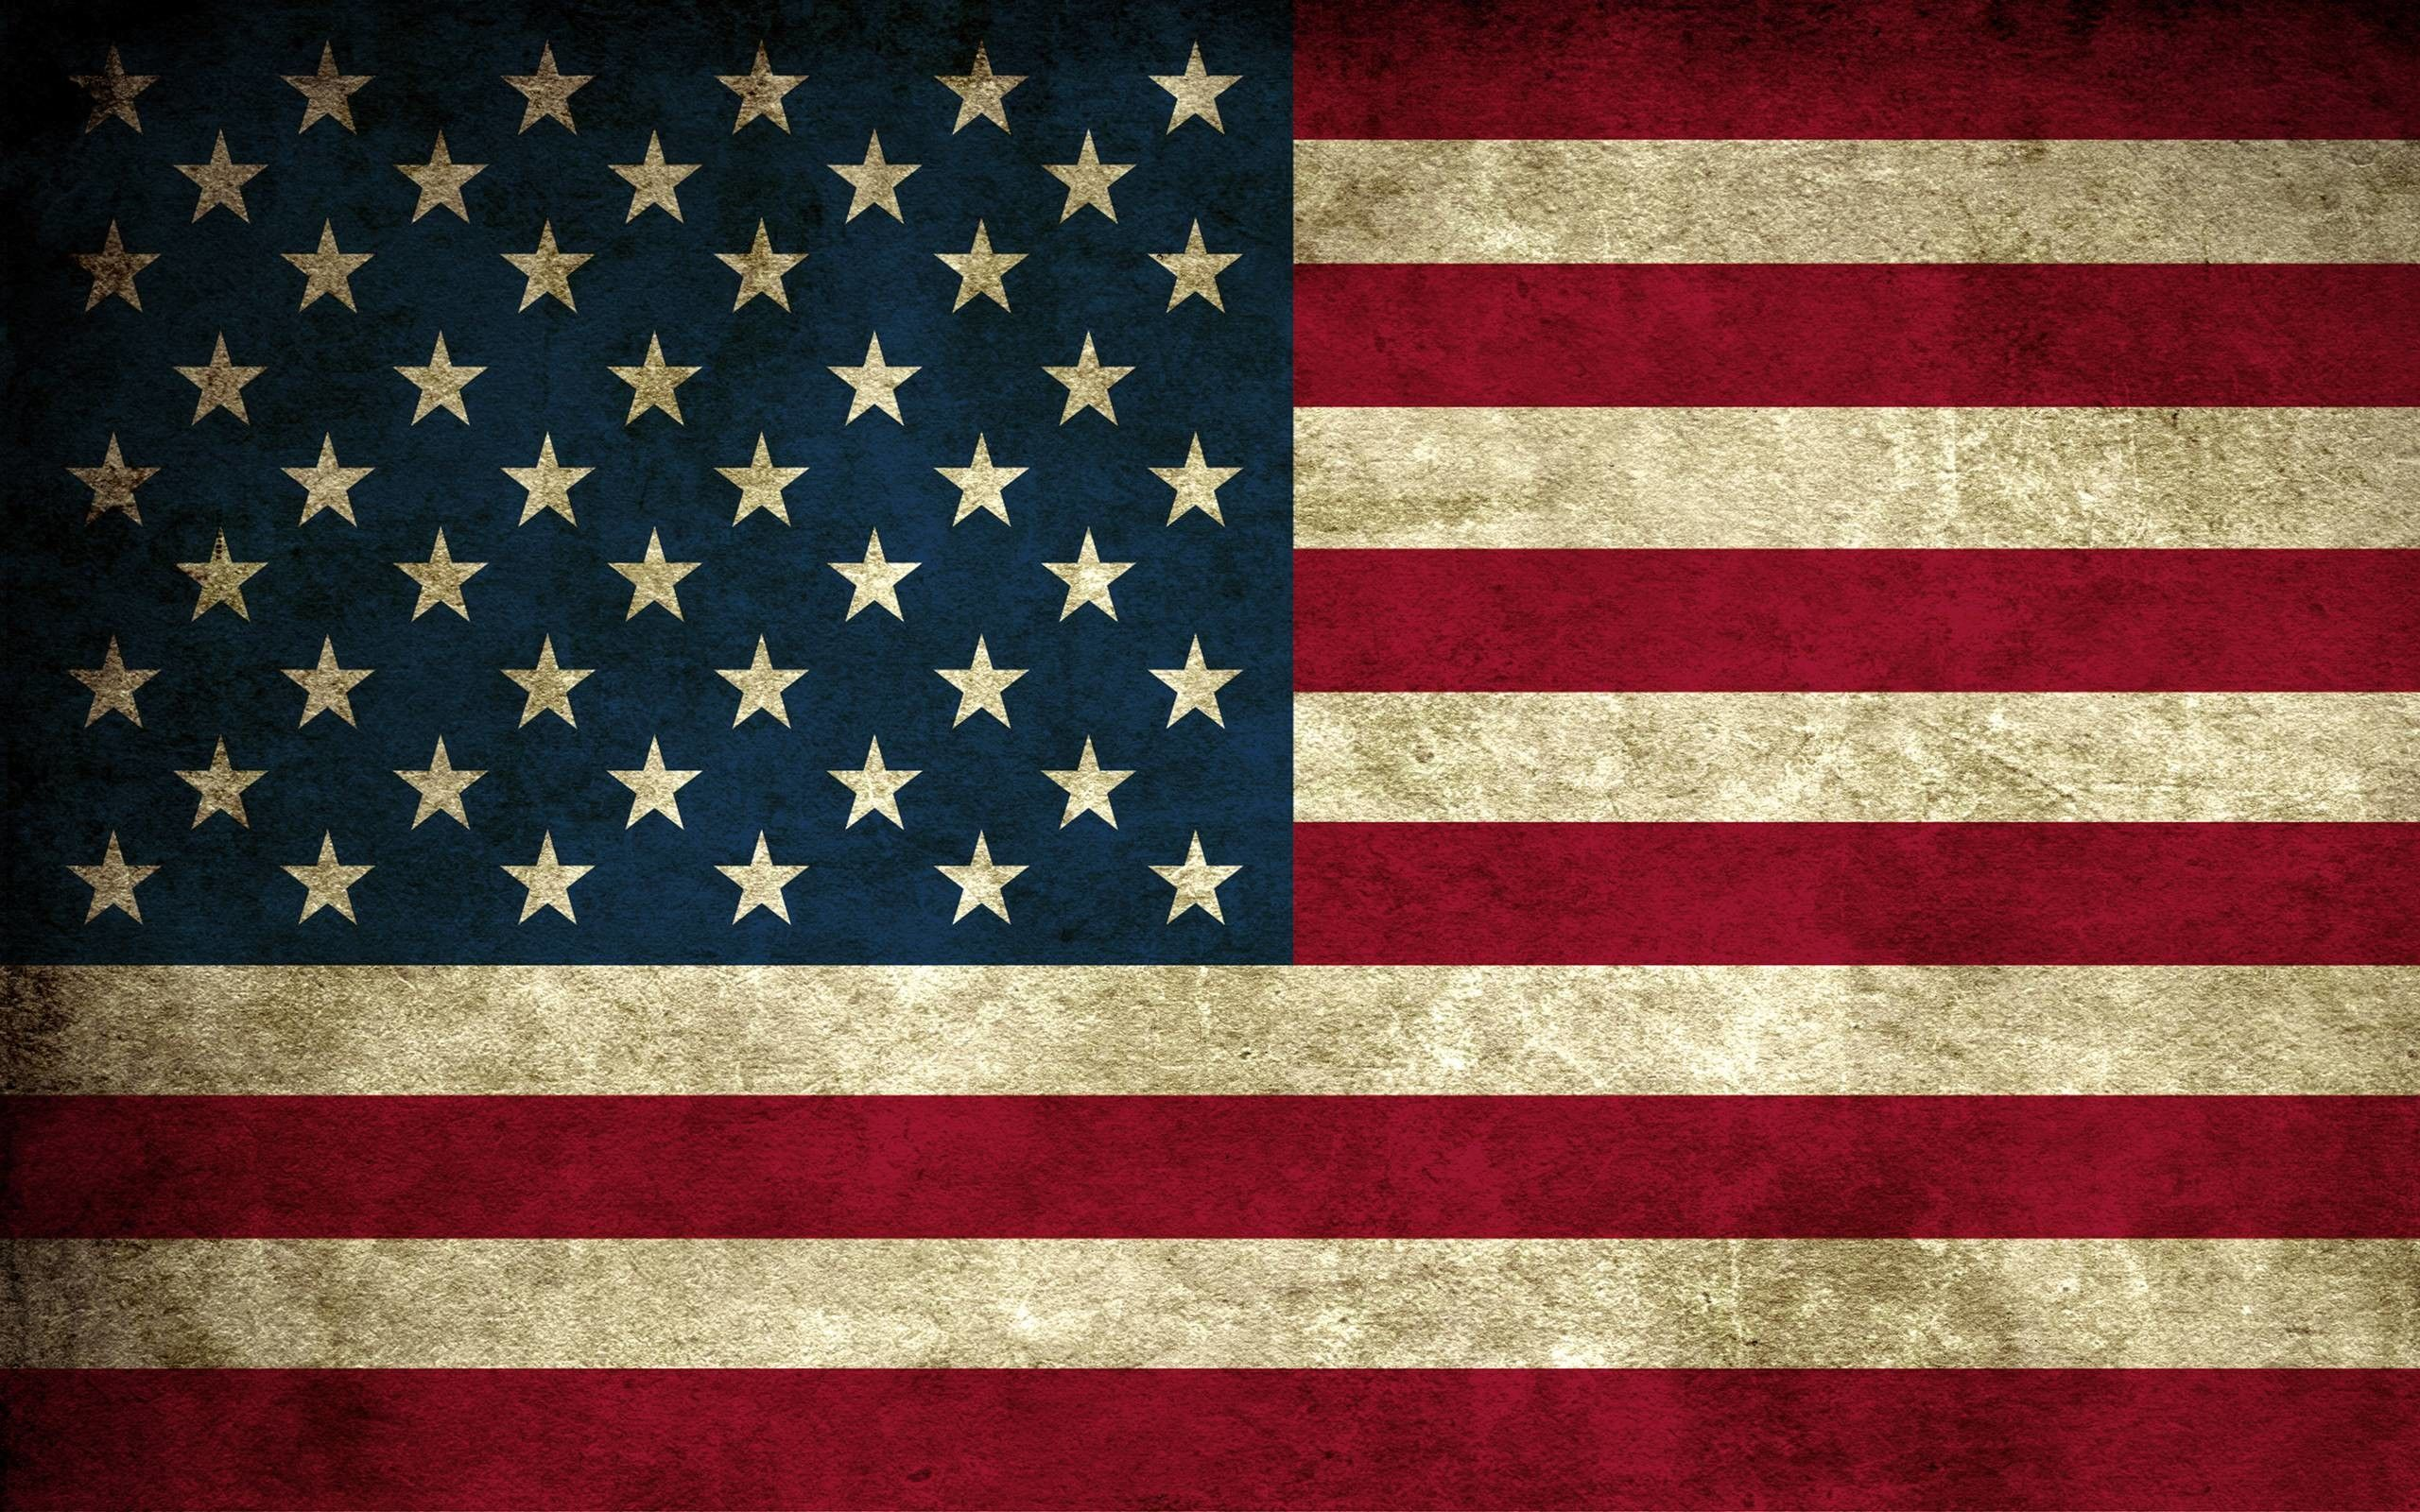 Rustic Usa Flag Png Free Rustic Usa Flag Png Transparent Images 123009 Pngio